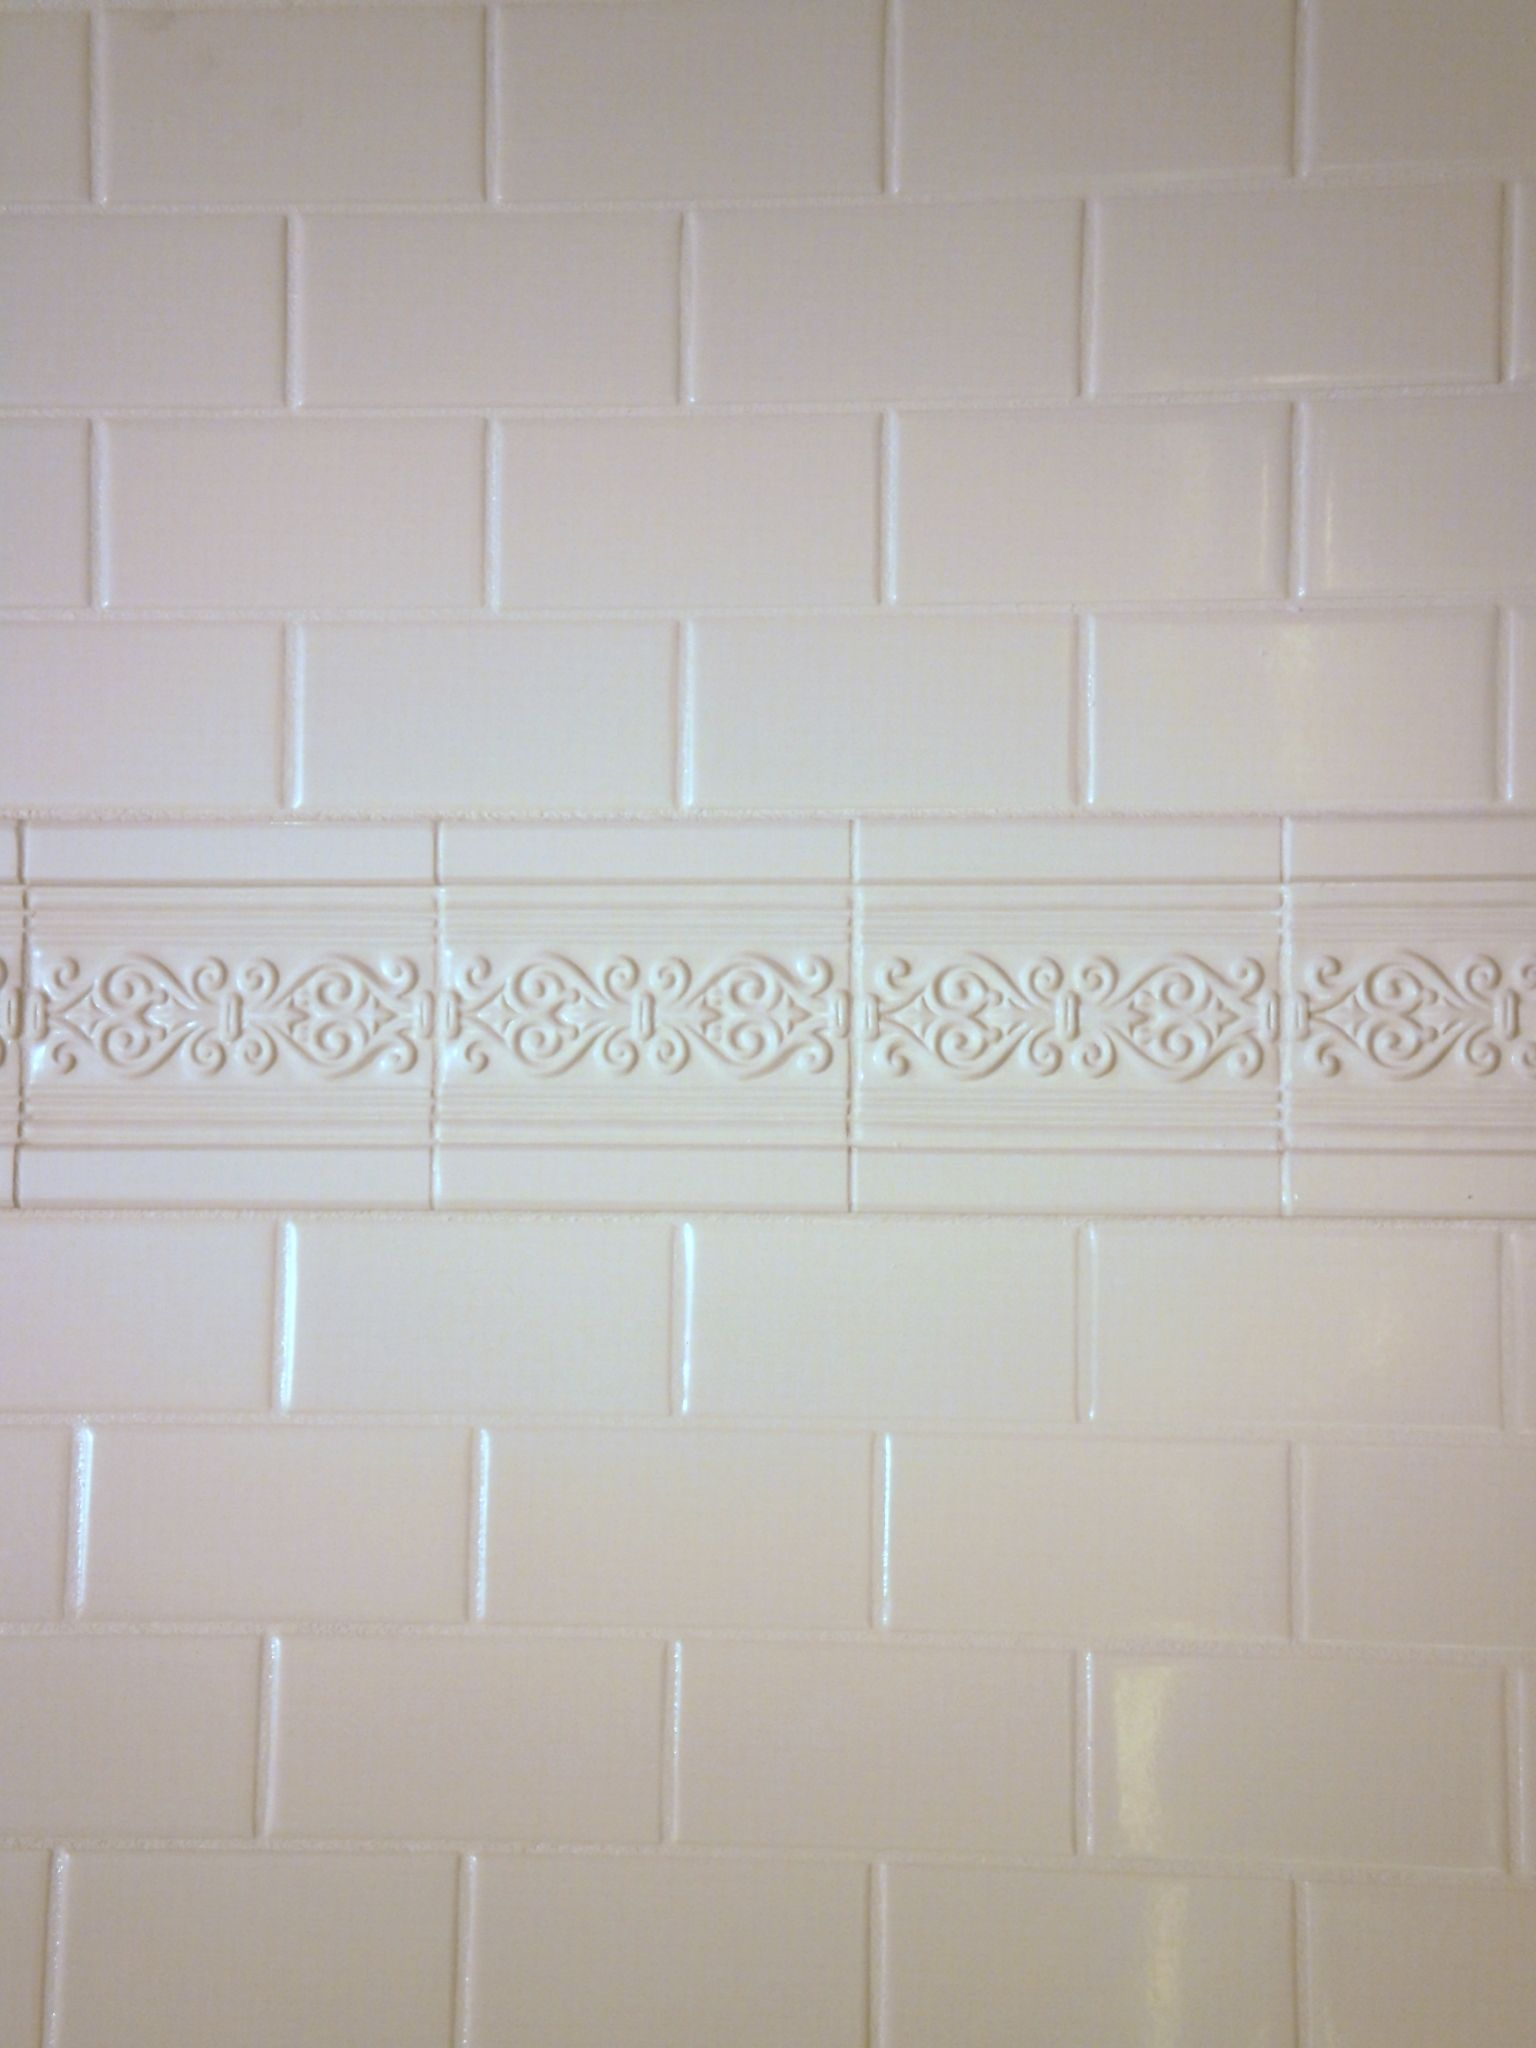 Cultured Marble Panels Made To Look Like Real Tile International Marble Industrie Cultured Marble Shower Cultured Marble Shower Walls Shower Surround Panels